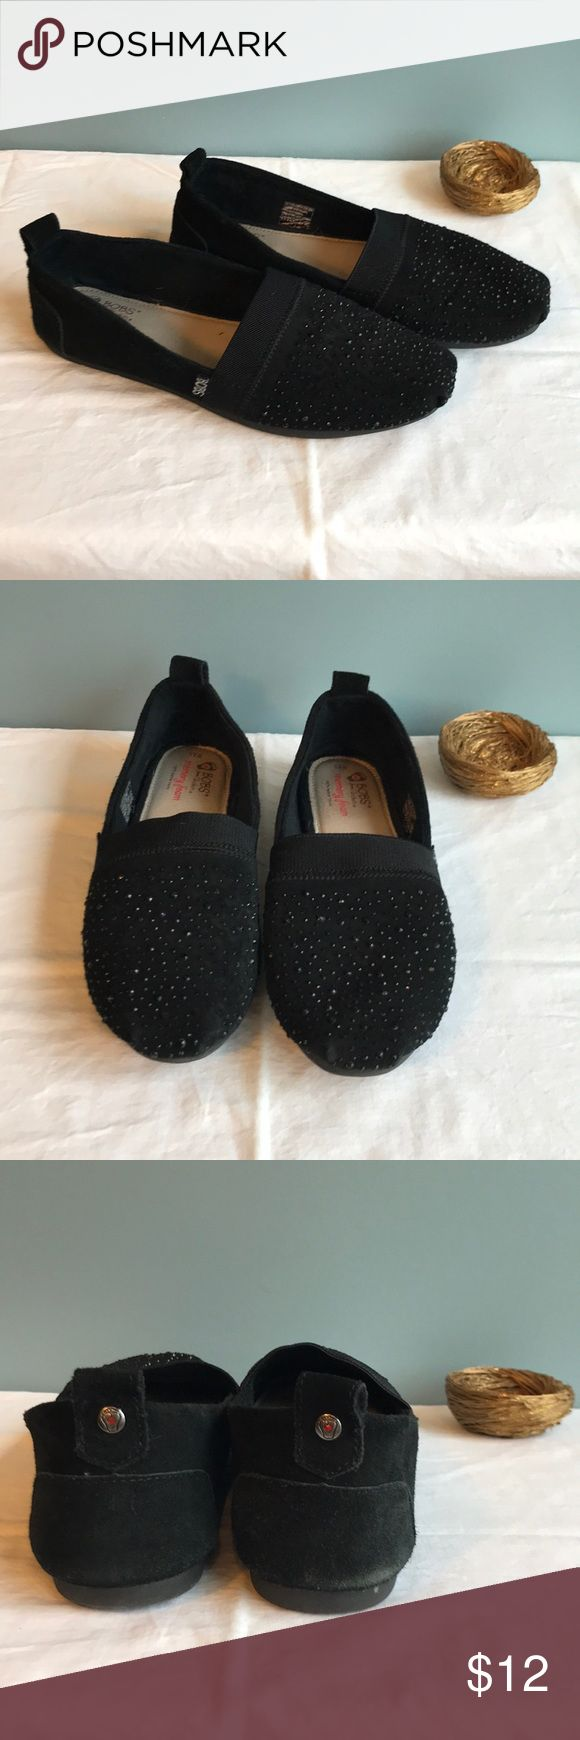 ✅NEW ITEM✅ Black Suede and Rhinestone BOBS (9.5W) BOBS by Skechers. Black suede and rhinestones. Memory foam. 100% leather insole. Size 9.5W. Pre-owned. Some wear on the suede on the heel; please see pictures and ask questions BEFORE buying. BOBS by Skechers Shoes Flats & Loafers